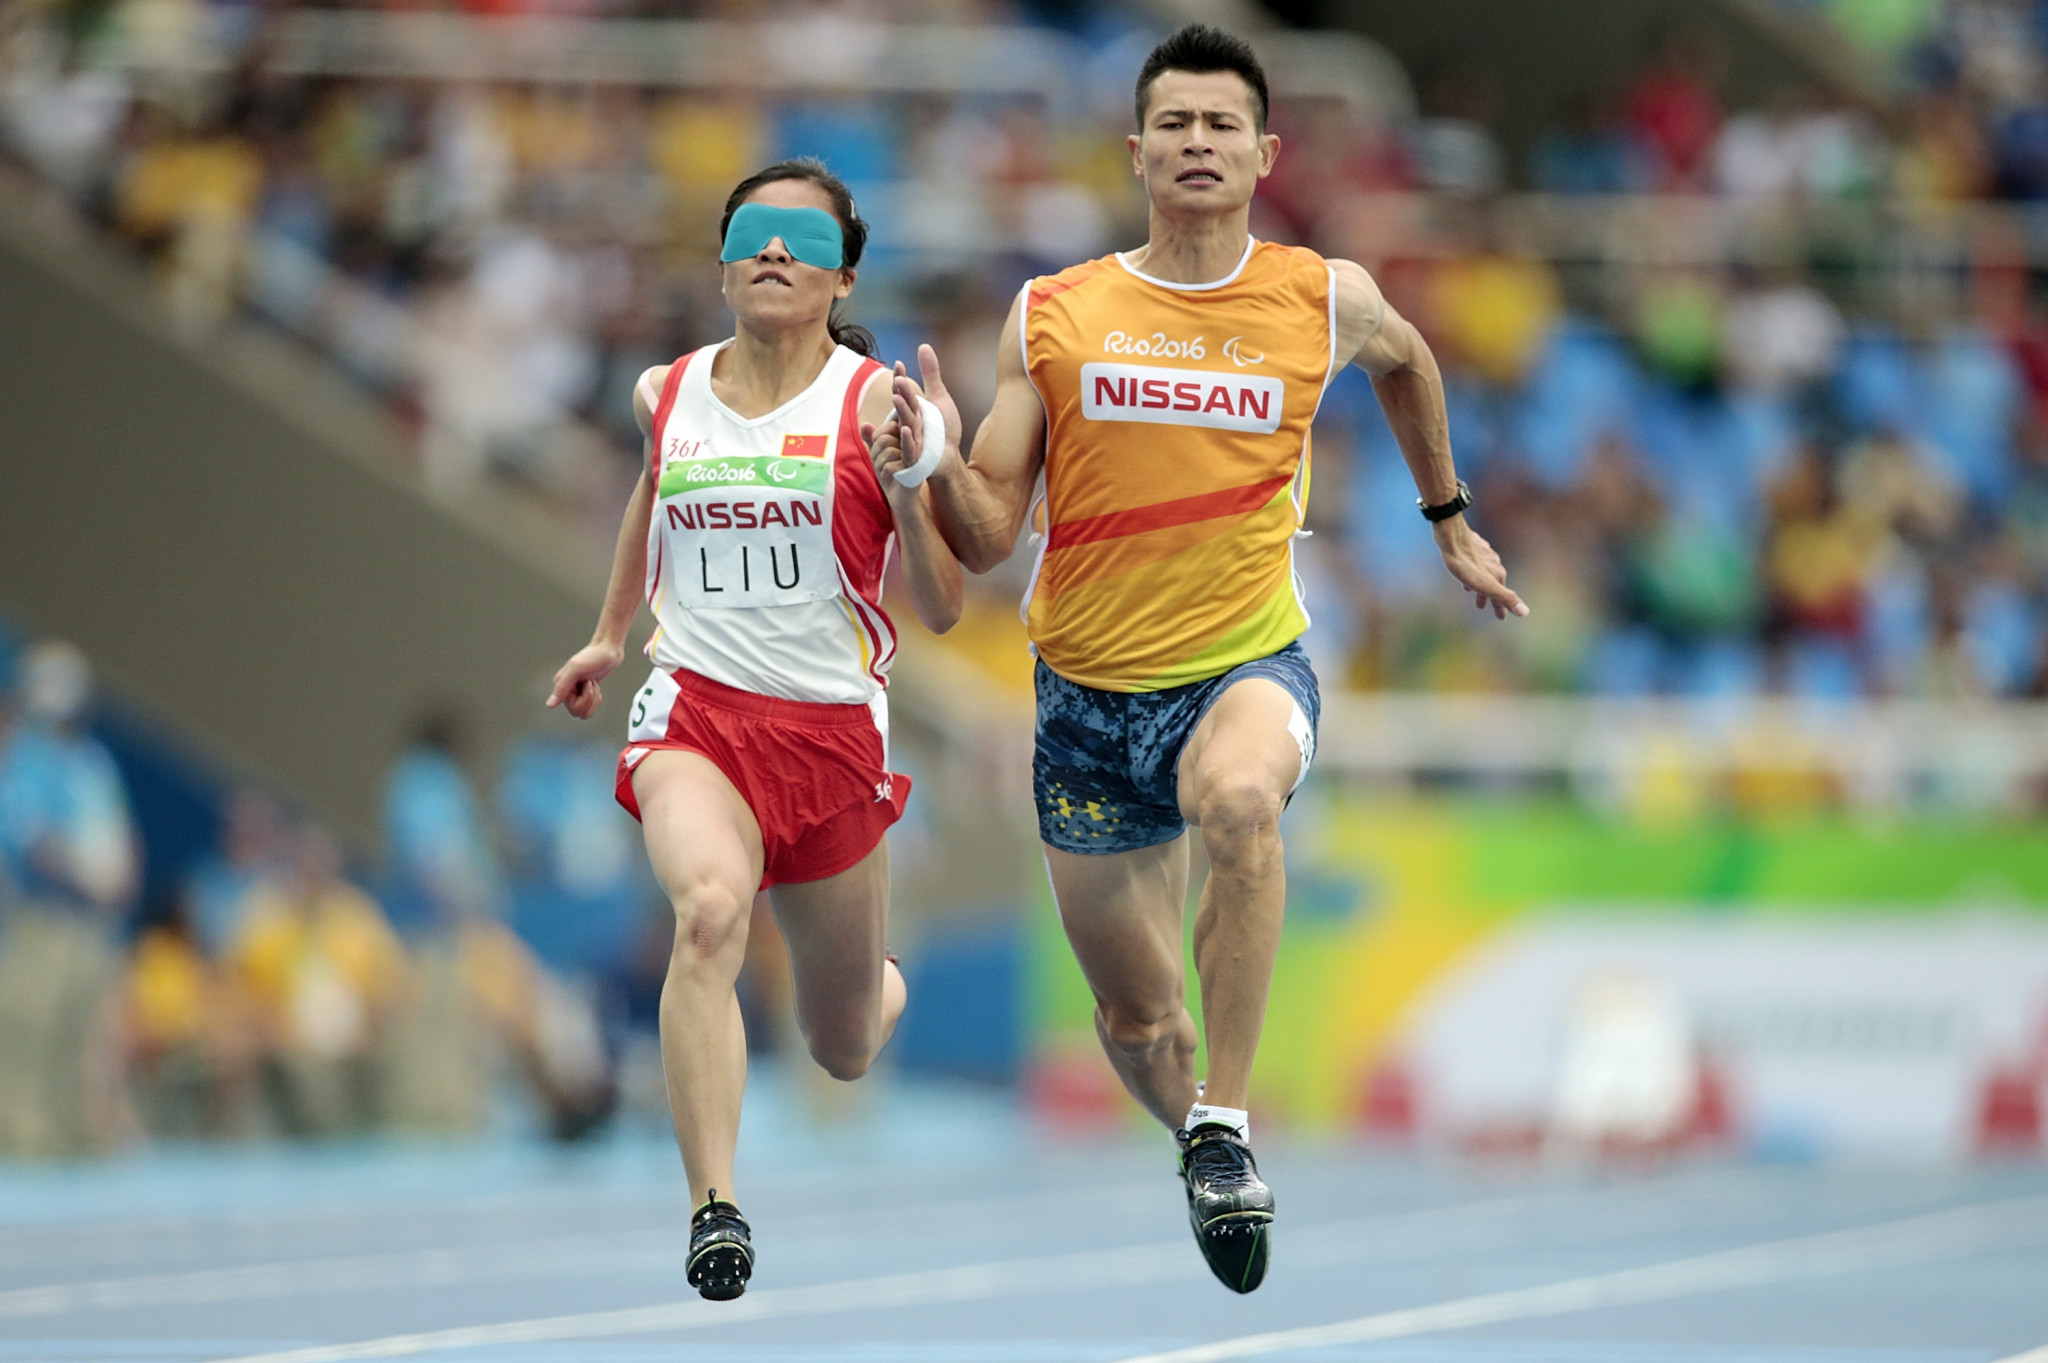 Paralympic champion Liu breaks world record on final day of World Para Athletics Grand Prix